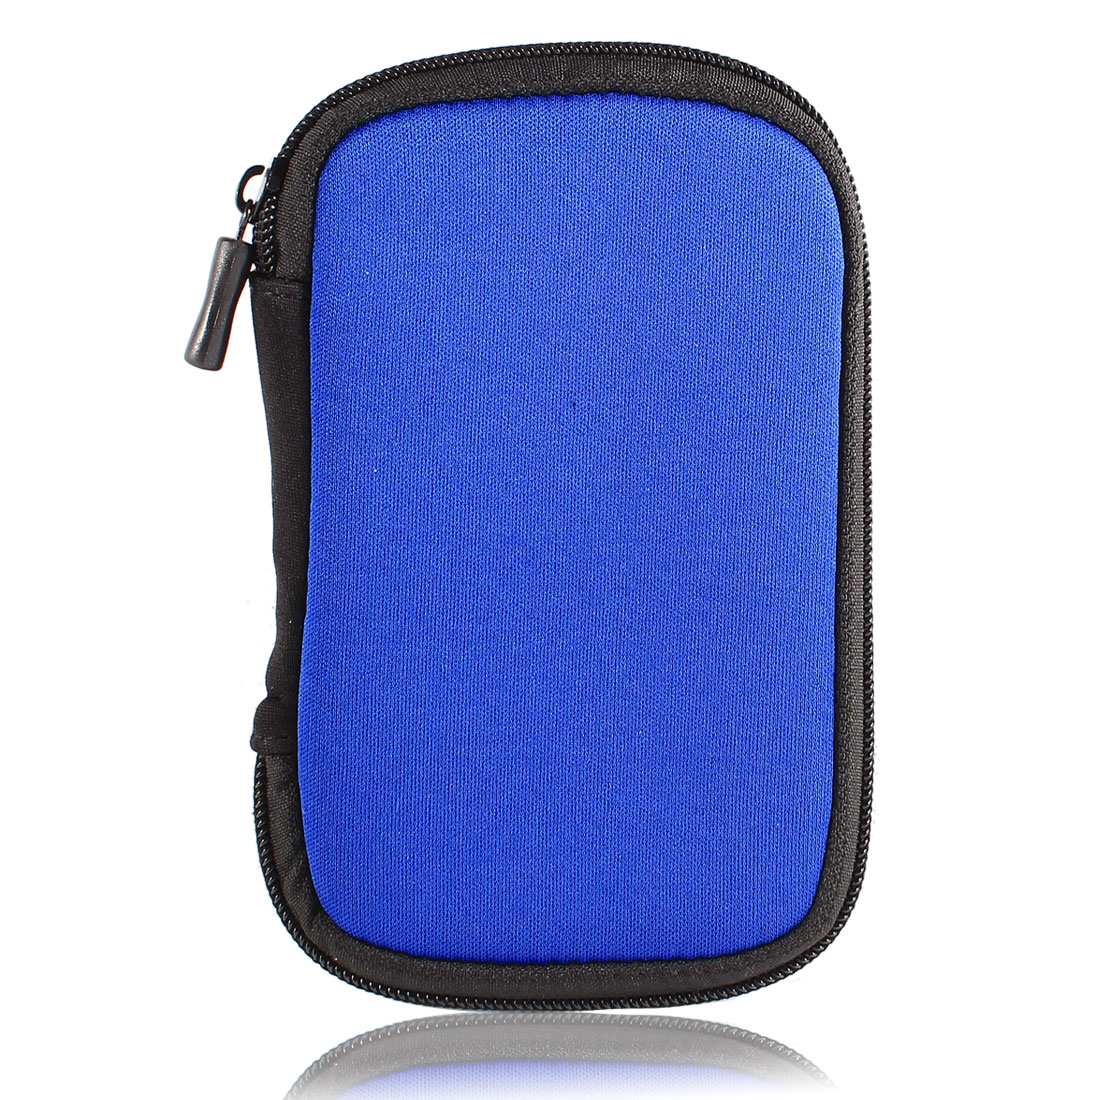 "2.5"" HDD Hard Drive Zip Portable Neoprene Sleeve Bag Carrying Case Blue"